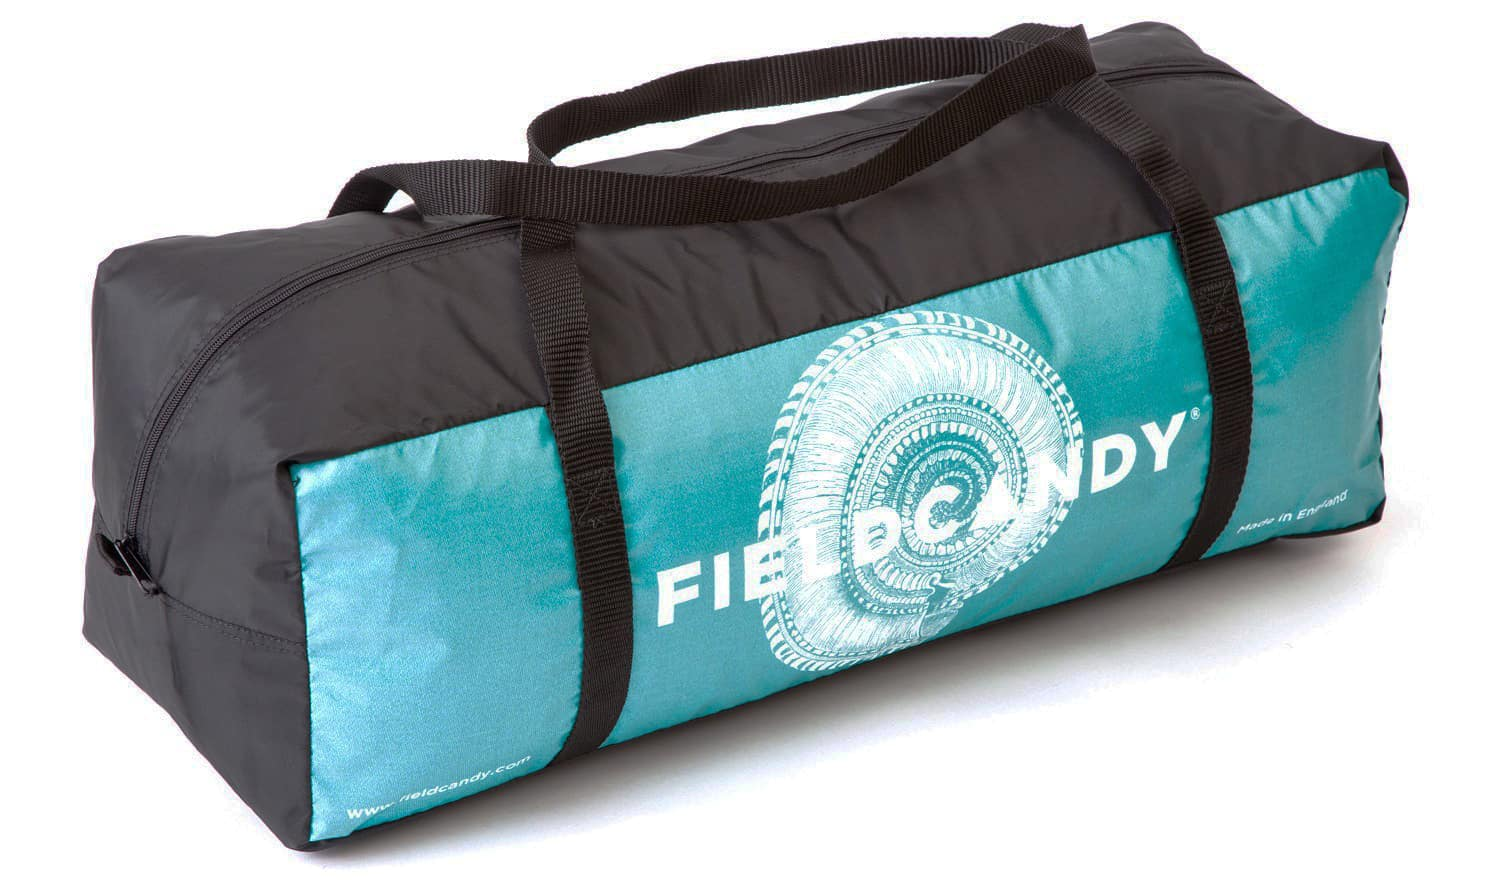 Fully Booked 2-Person Tent Field Candy Carry Case